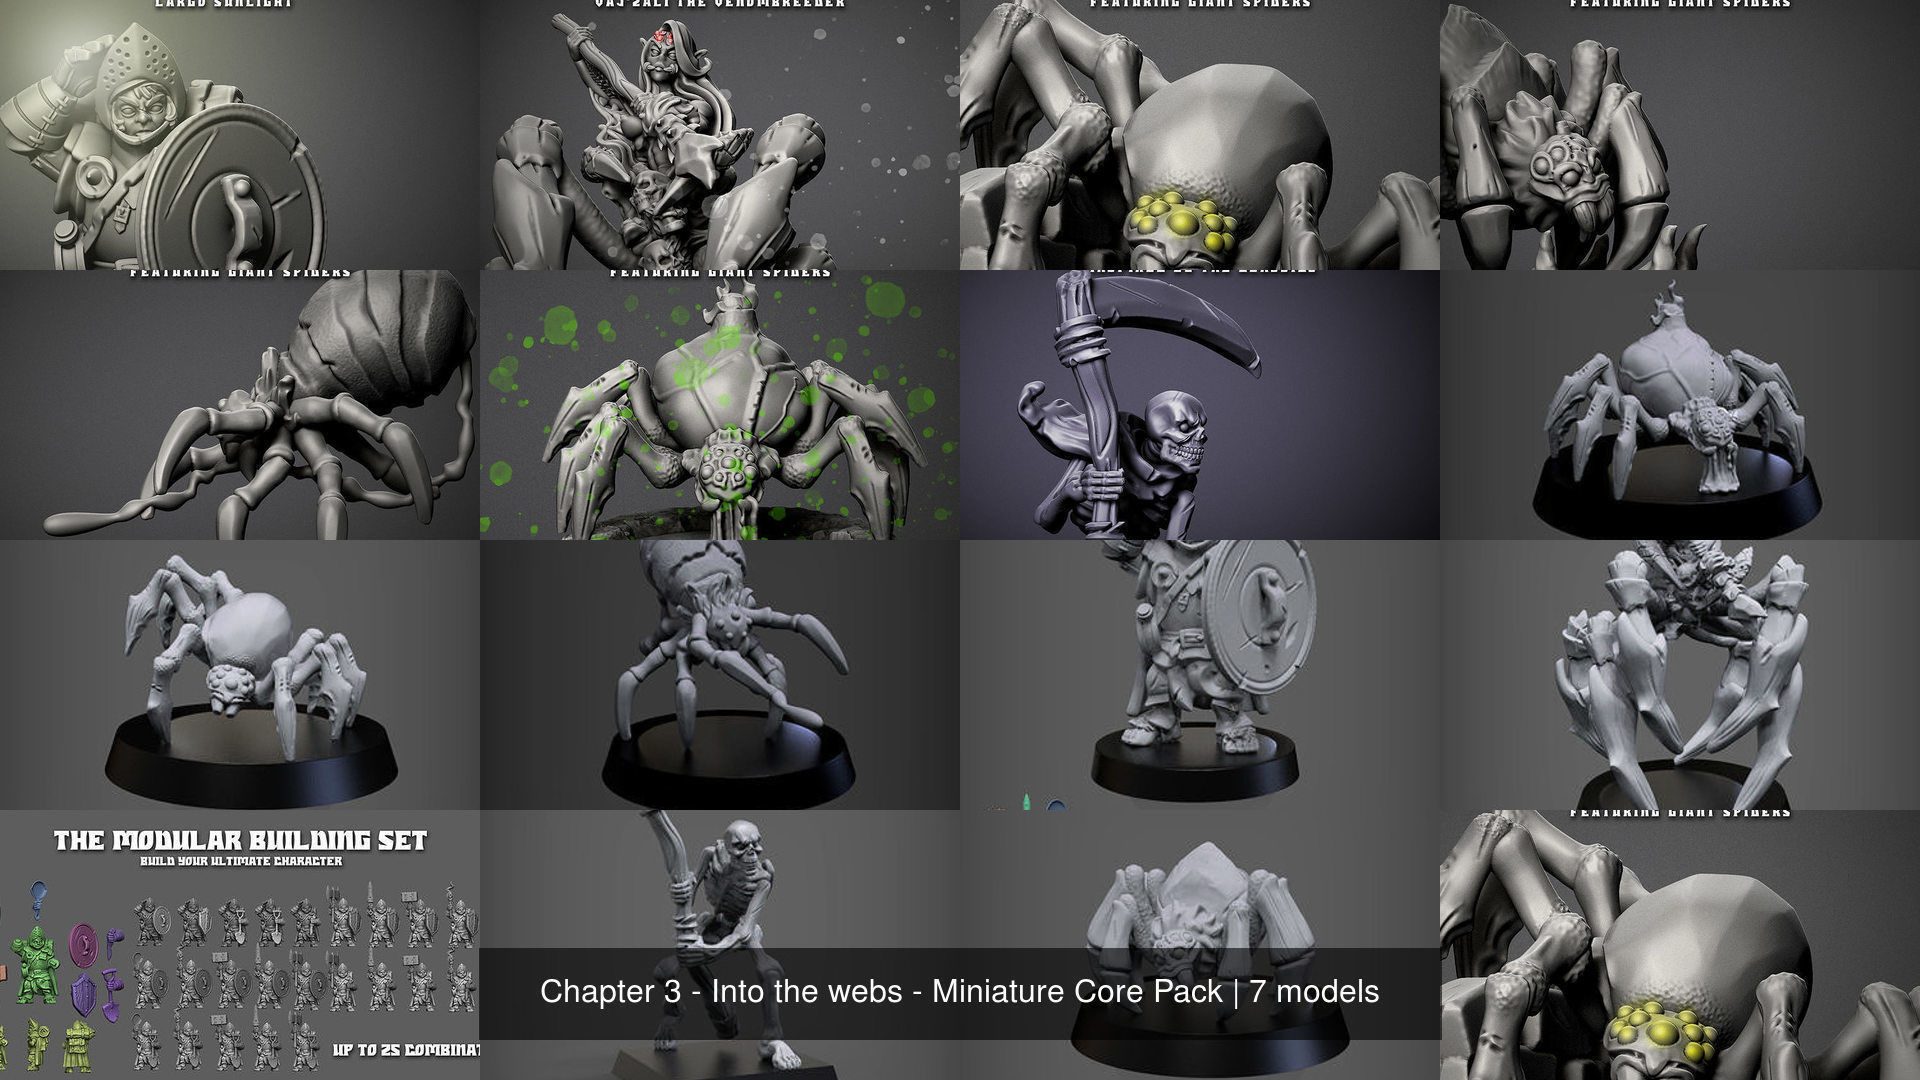 Chapter 3 - Into the webs - Miniature Core Pack